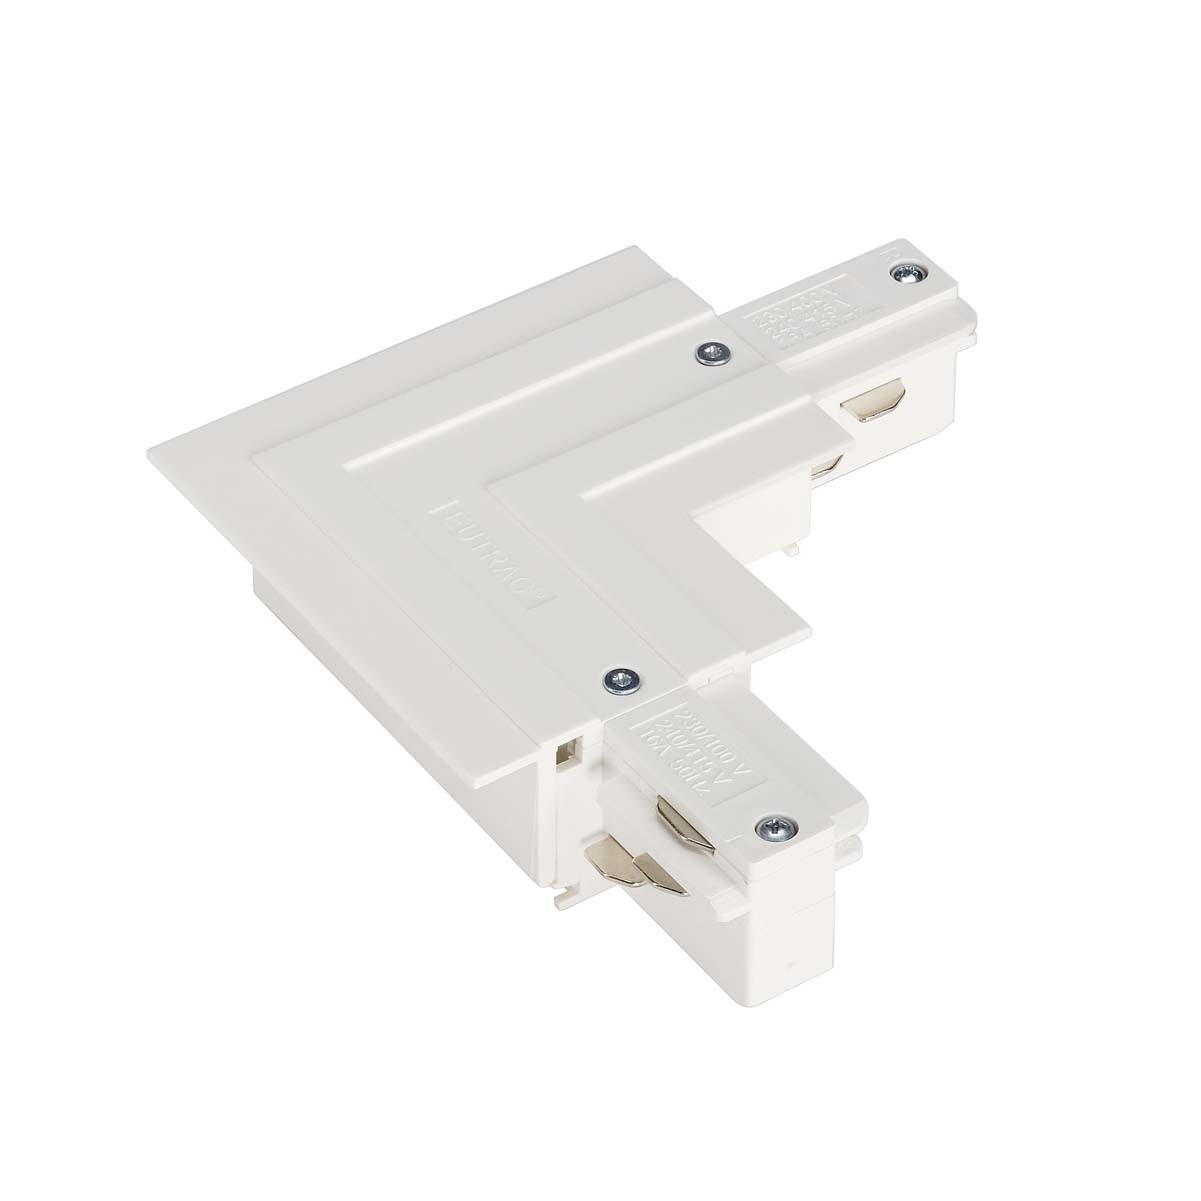 SLV 145761 L Coupler Earth Outer White Eutrac 3 Circuit 240V Recessed Track Accessory